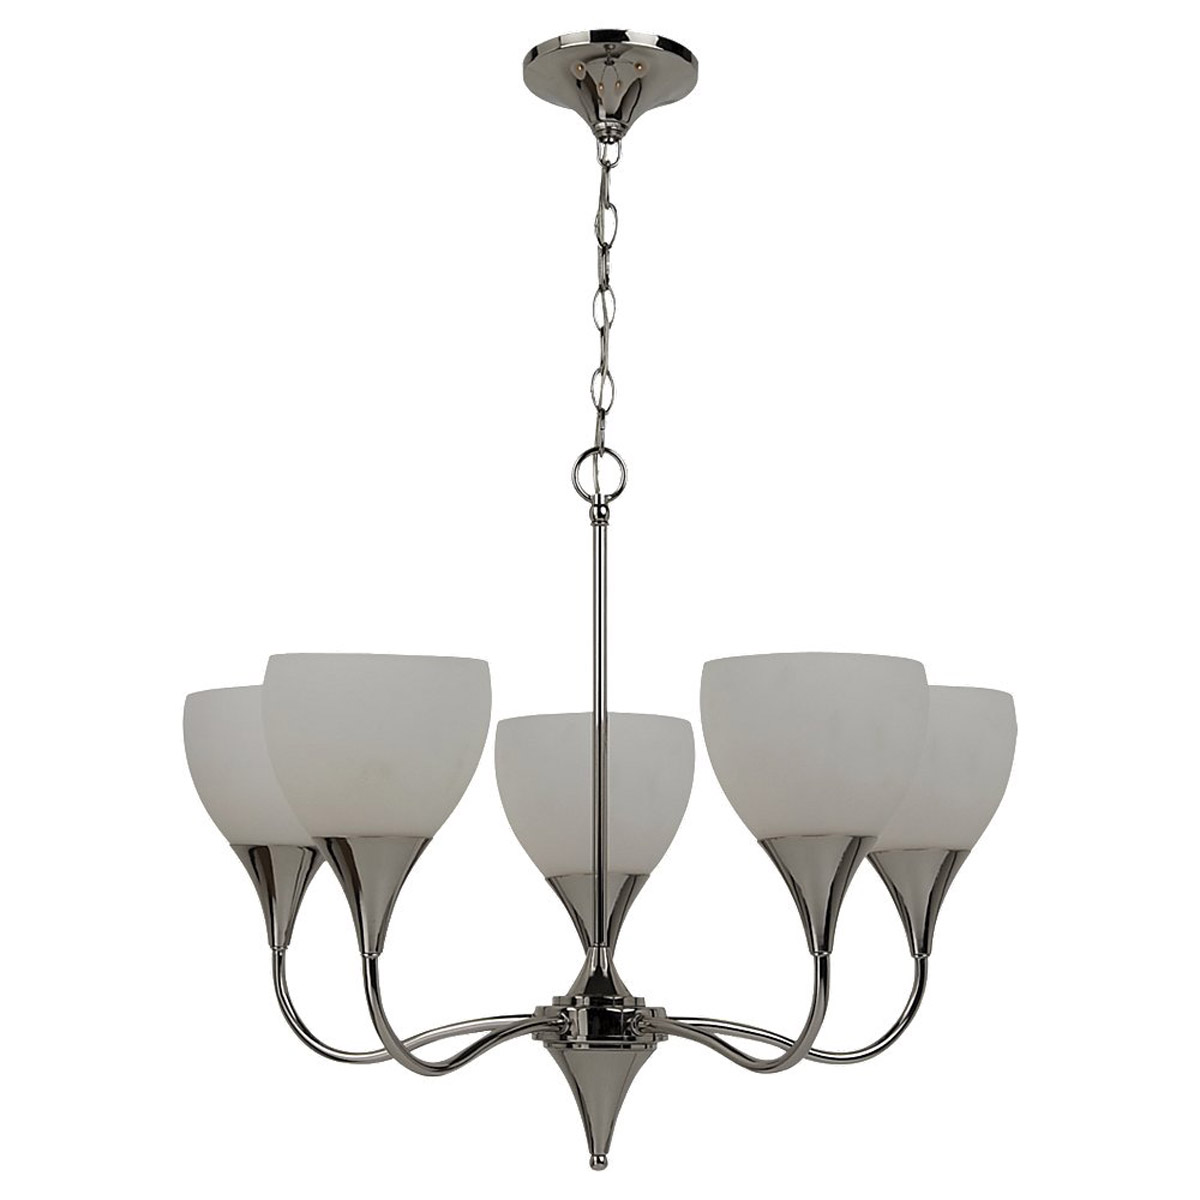 Sea Gull 31961-841 Solana 5 Light 27 inch Polished Nickel Chandelier Ceiling Light in Standard photo